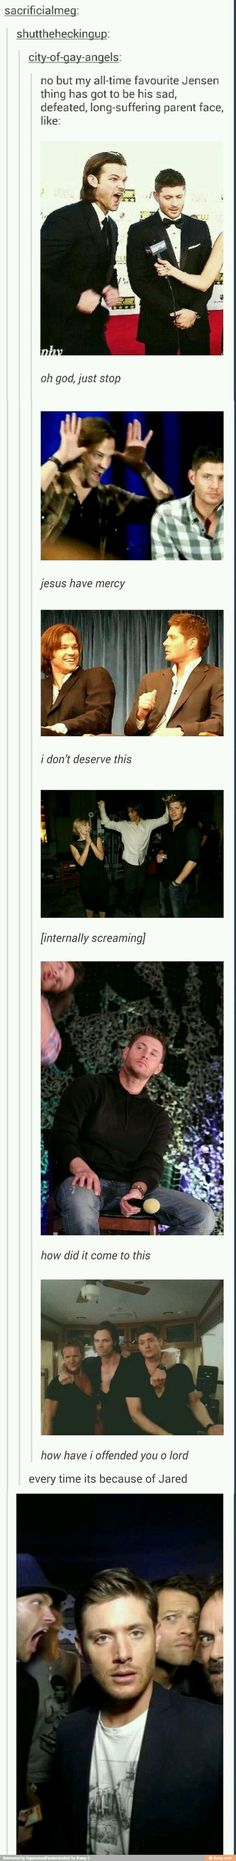 Haha look at misha in the last one. Off to the right.